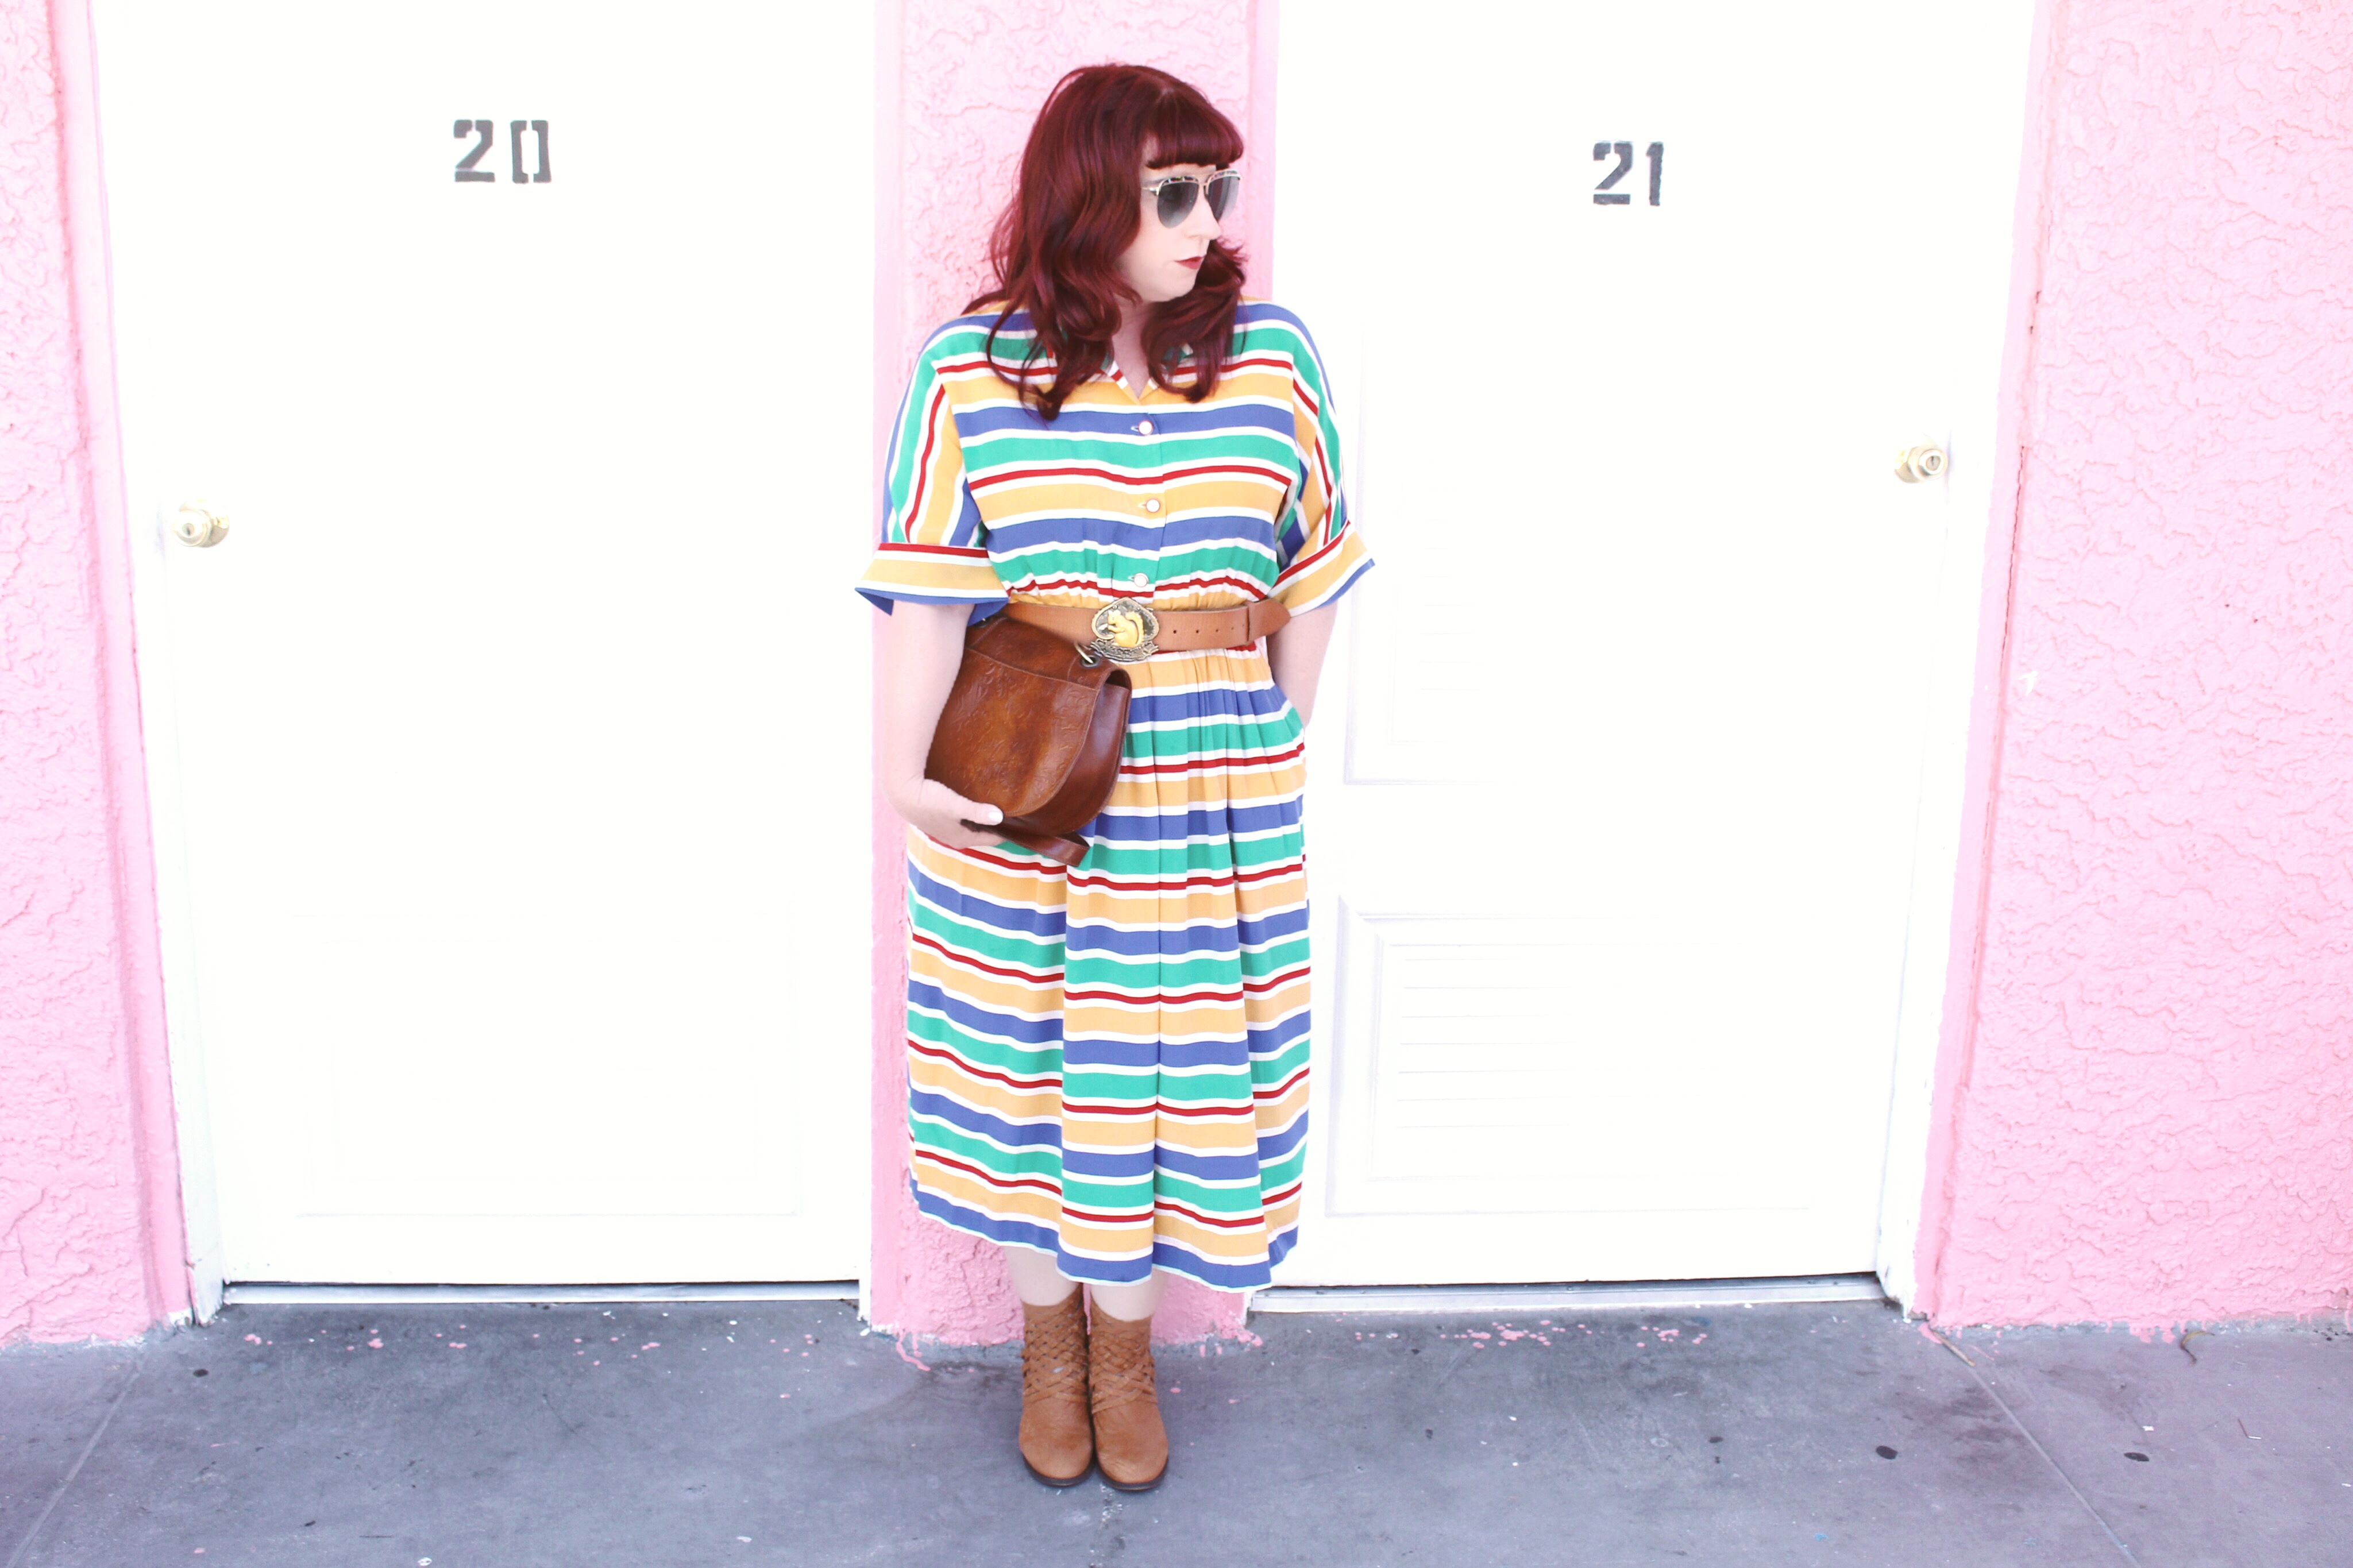 ad9fefc2ae1 How to Wear Stripes Like a Boss - Christie Moeller